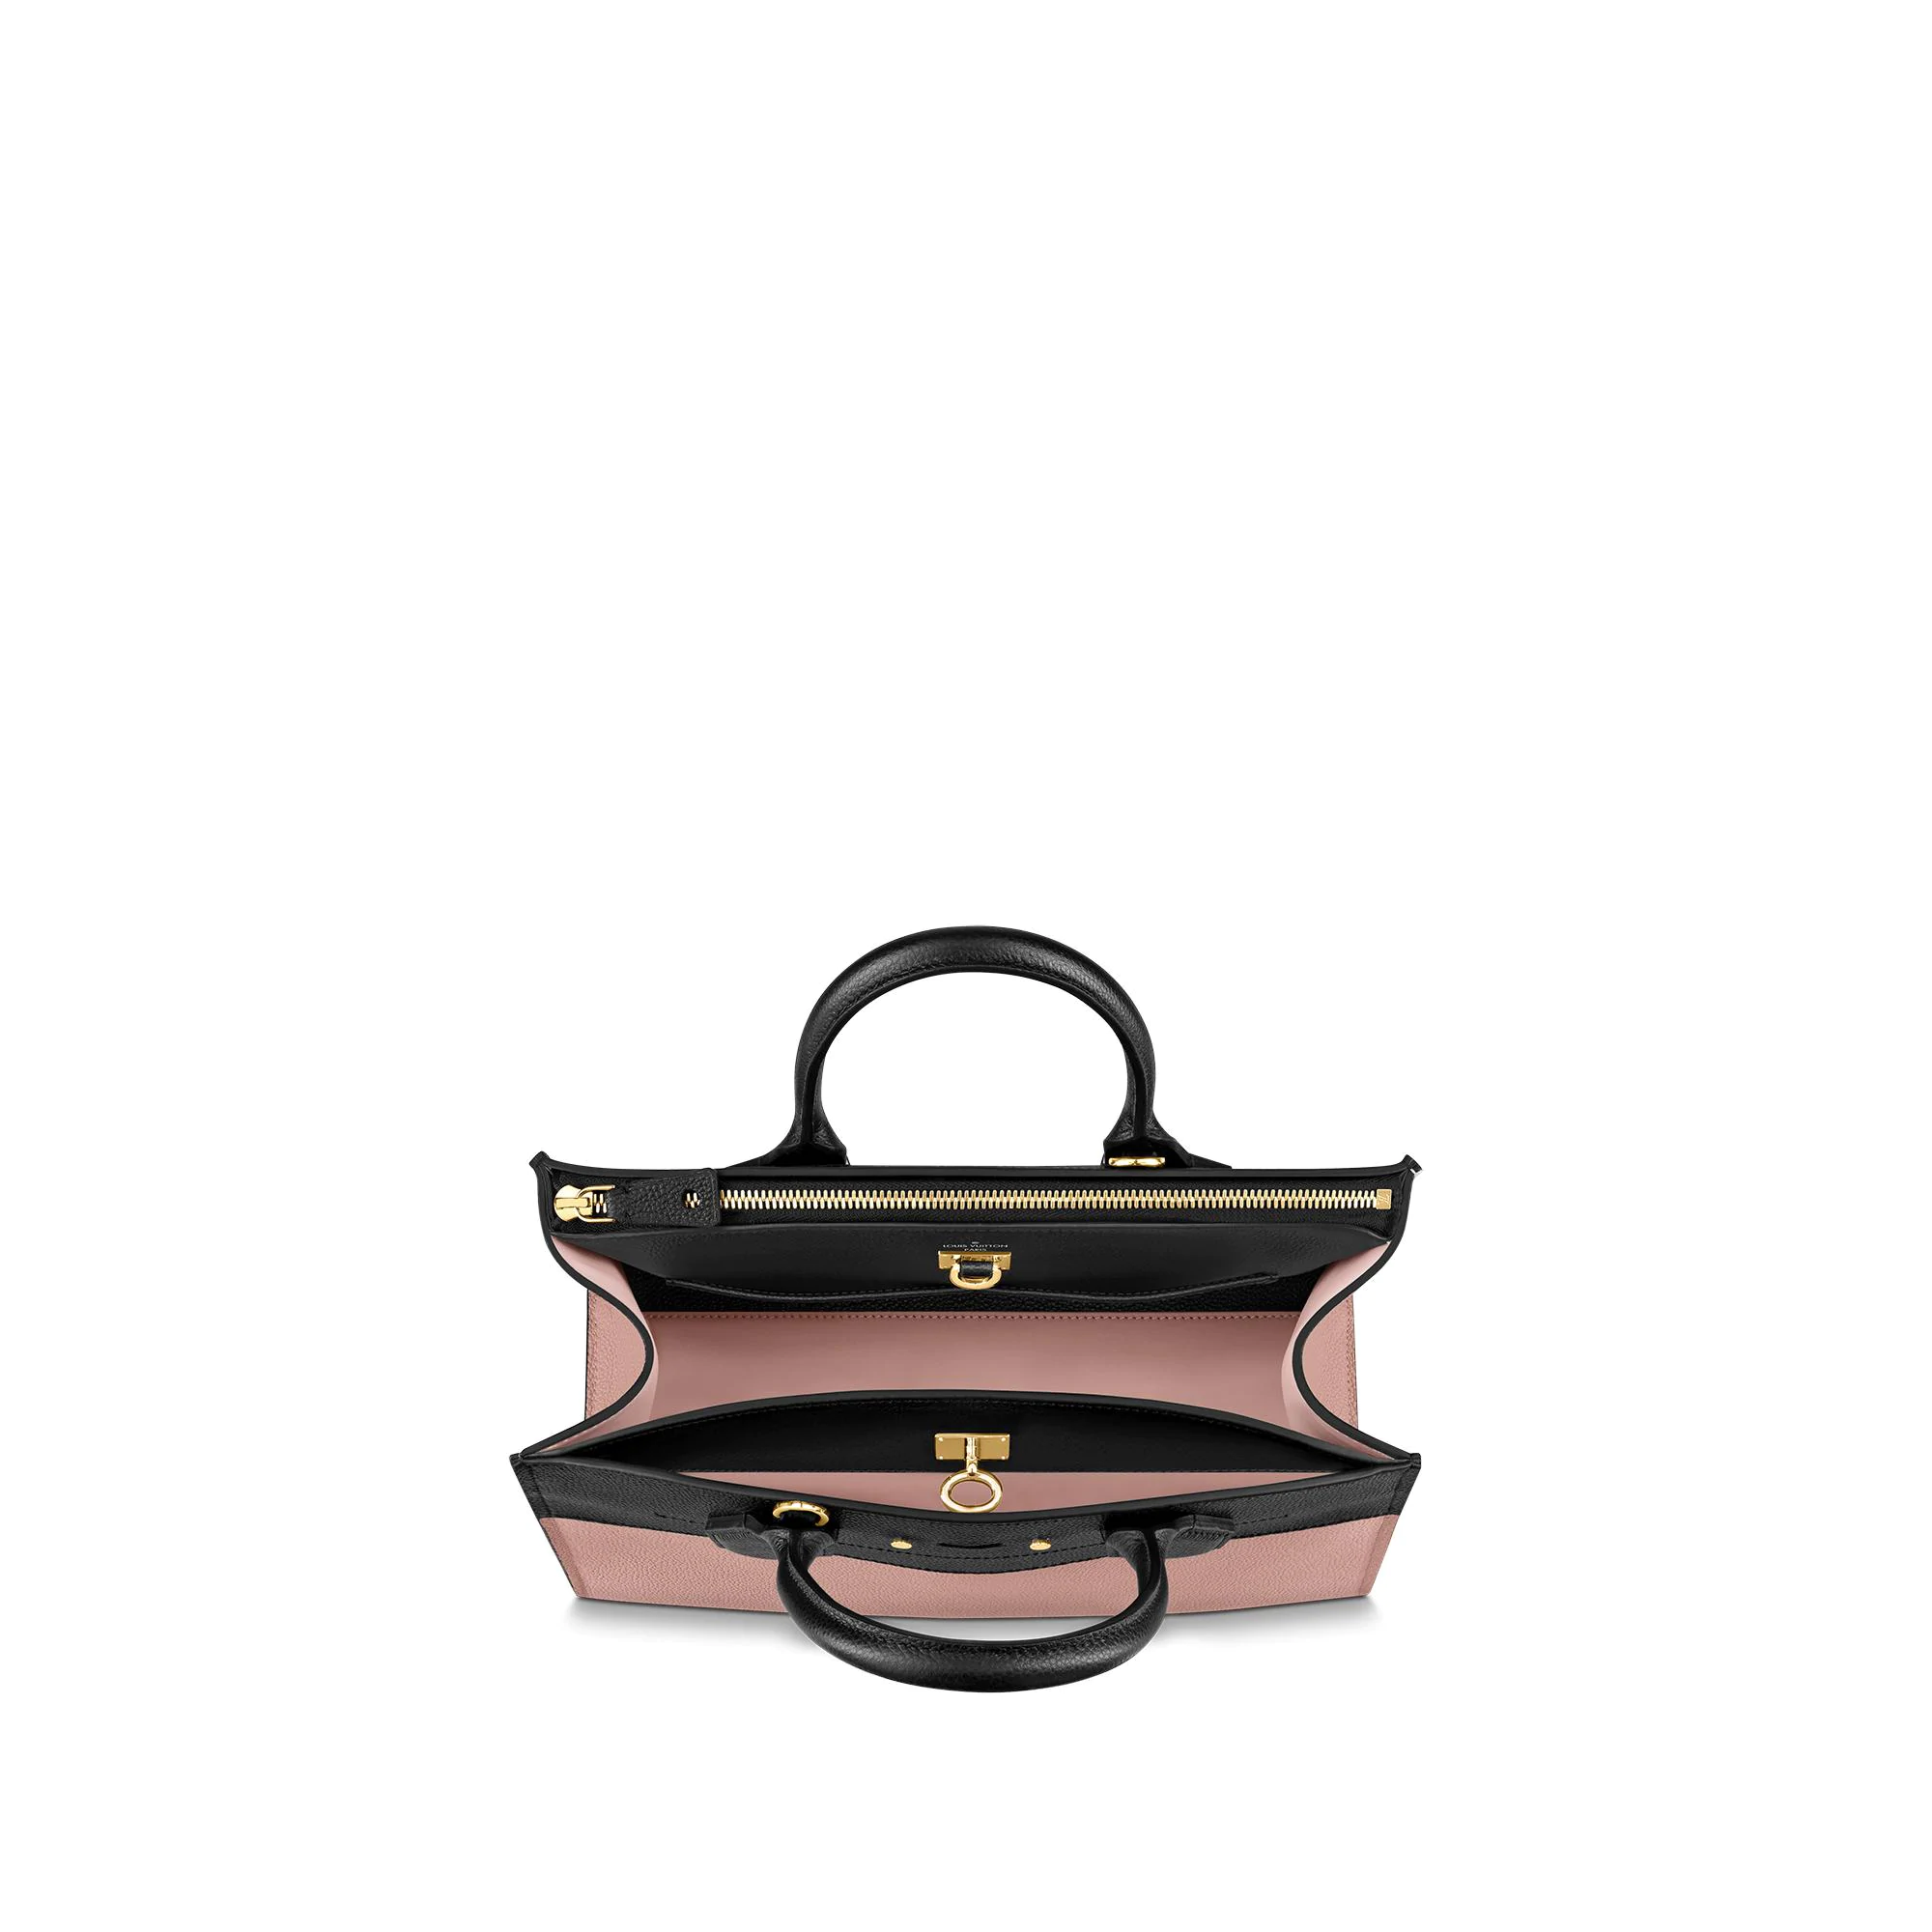 유럽직배송 루이비통 LOUIS VUITTON City Steamer MM M53019